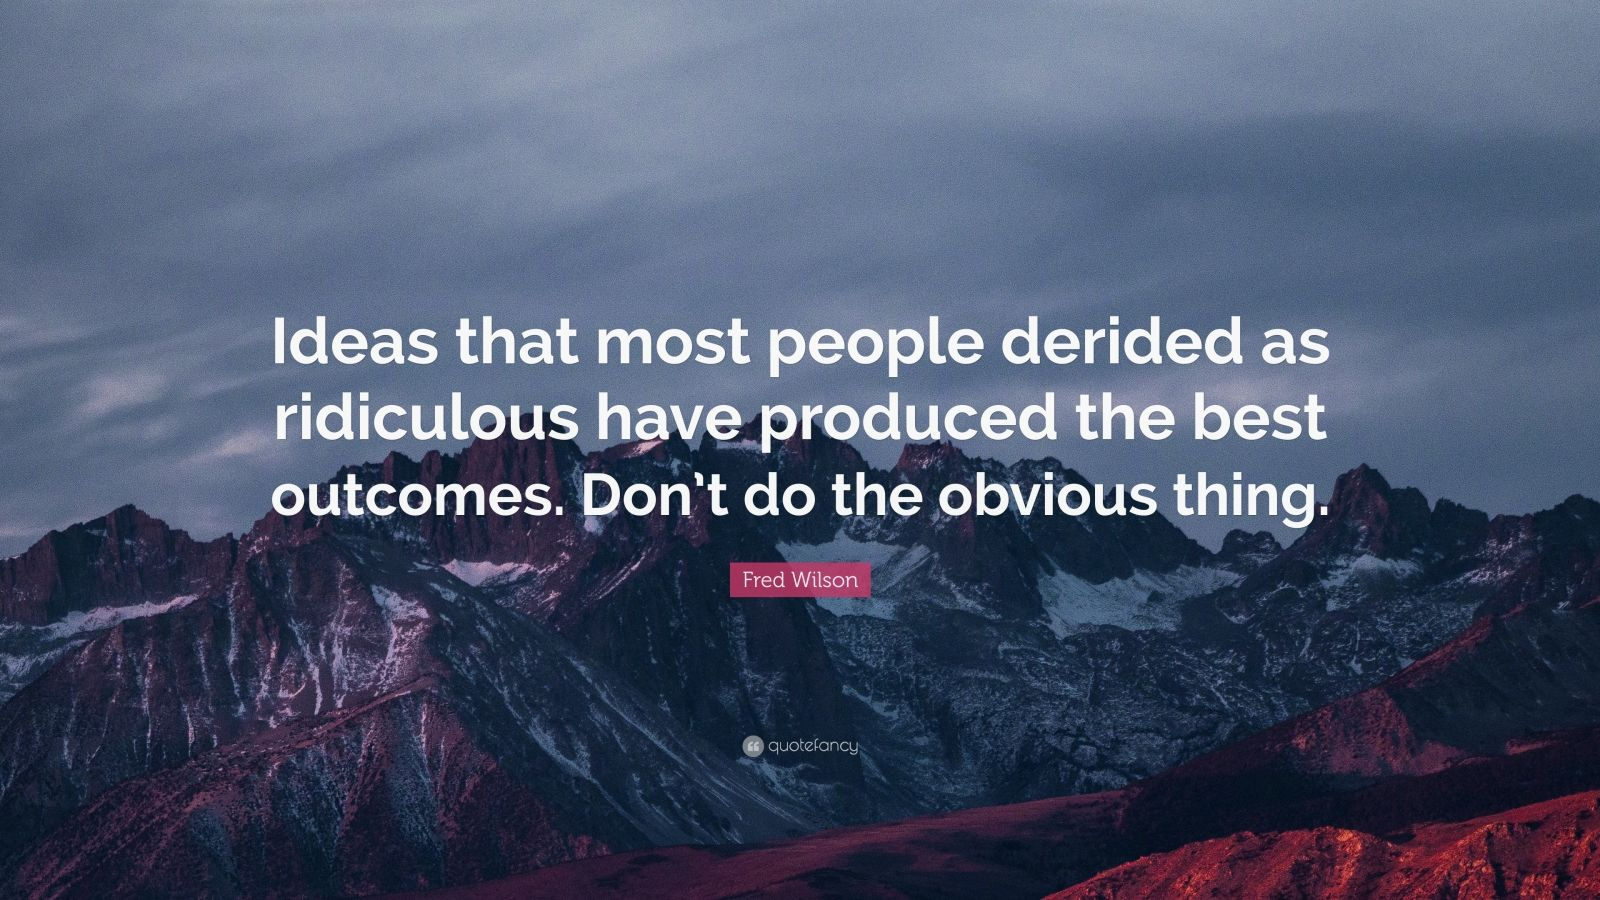 """Fred Wilson Quote: """"Ideas that most people derided as ridiculous have produced the best outcomes. Don't do the obvious thing."""""""